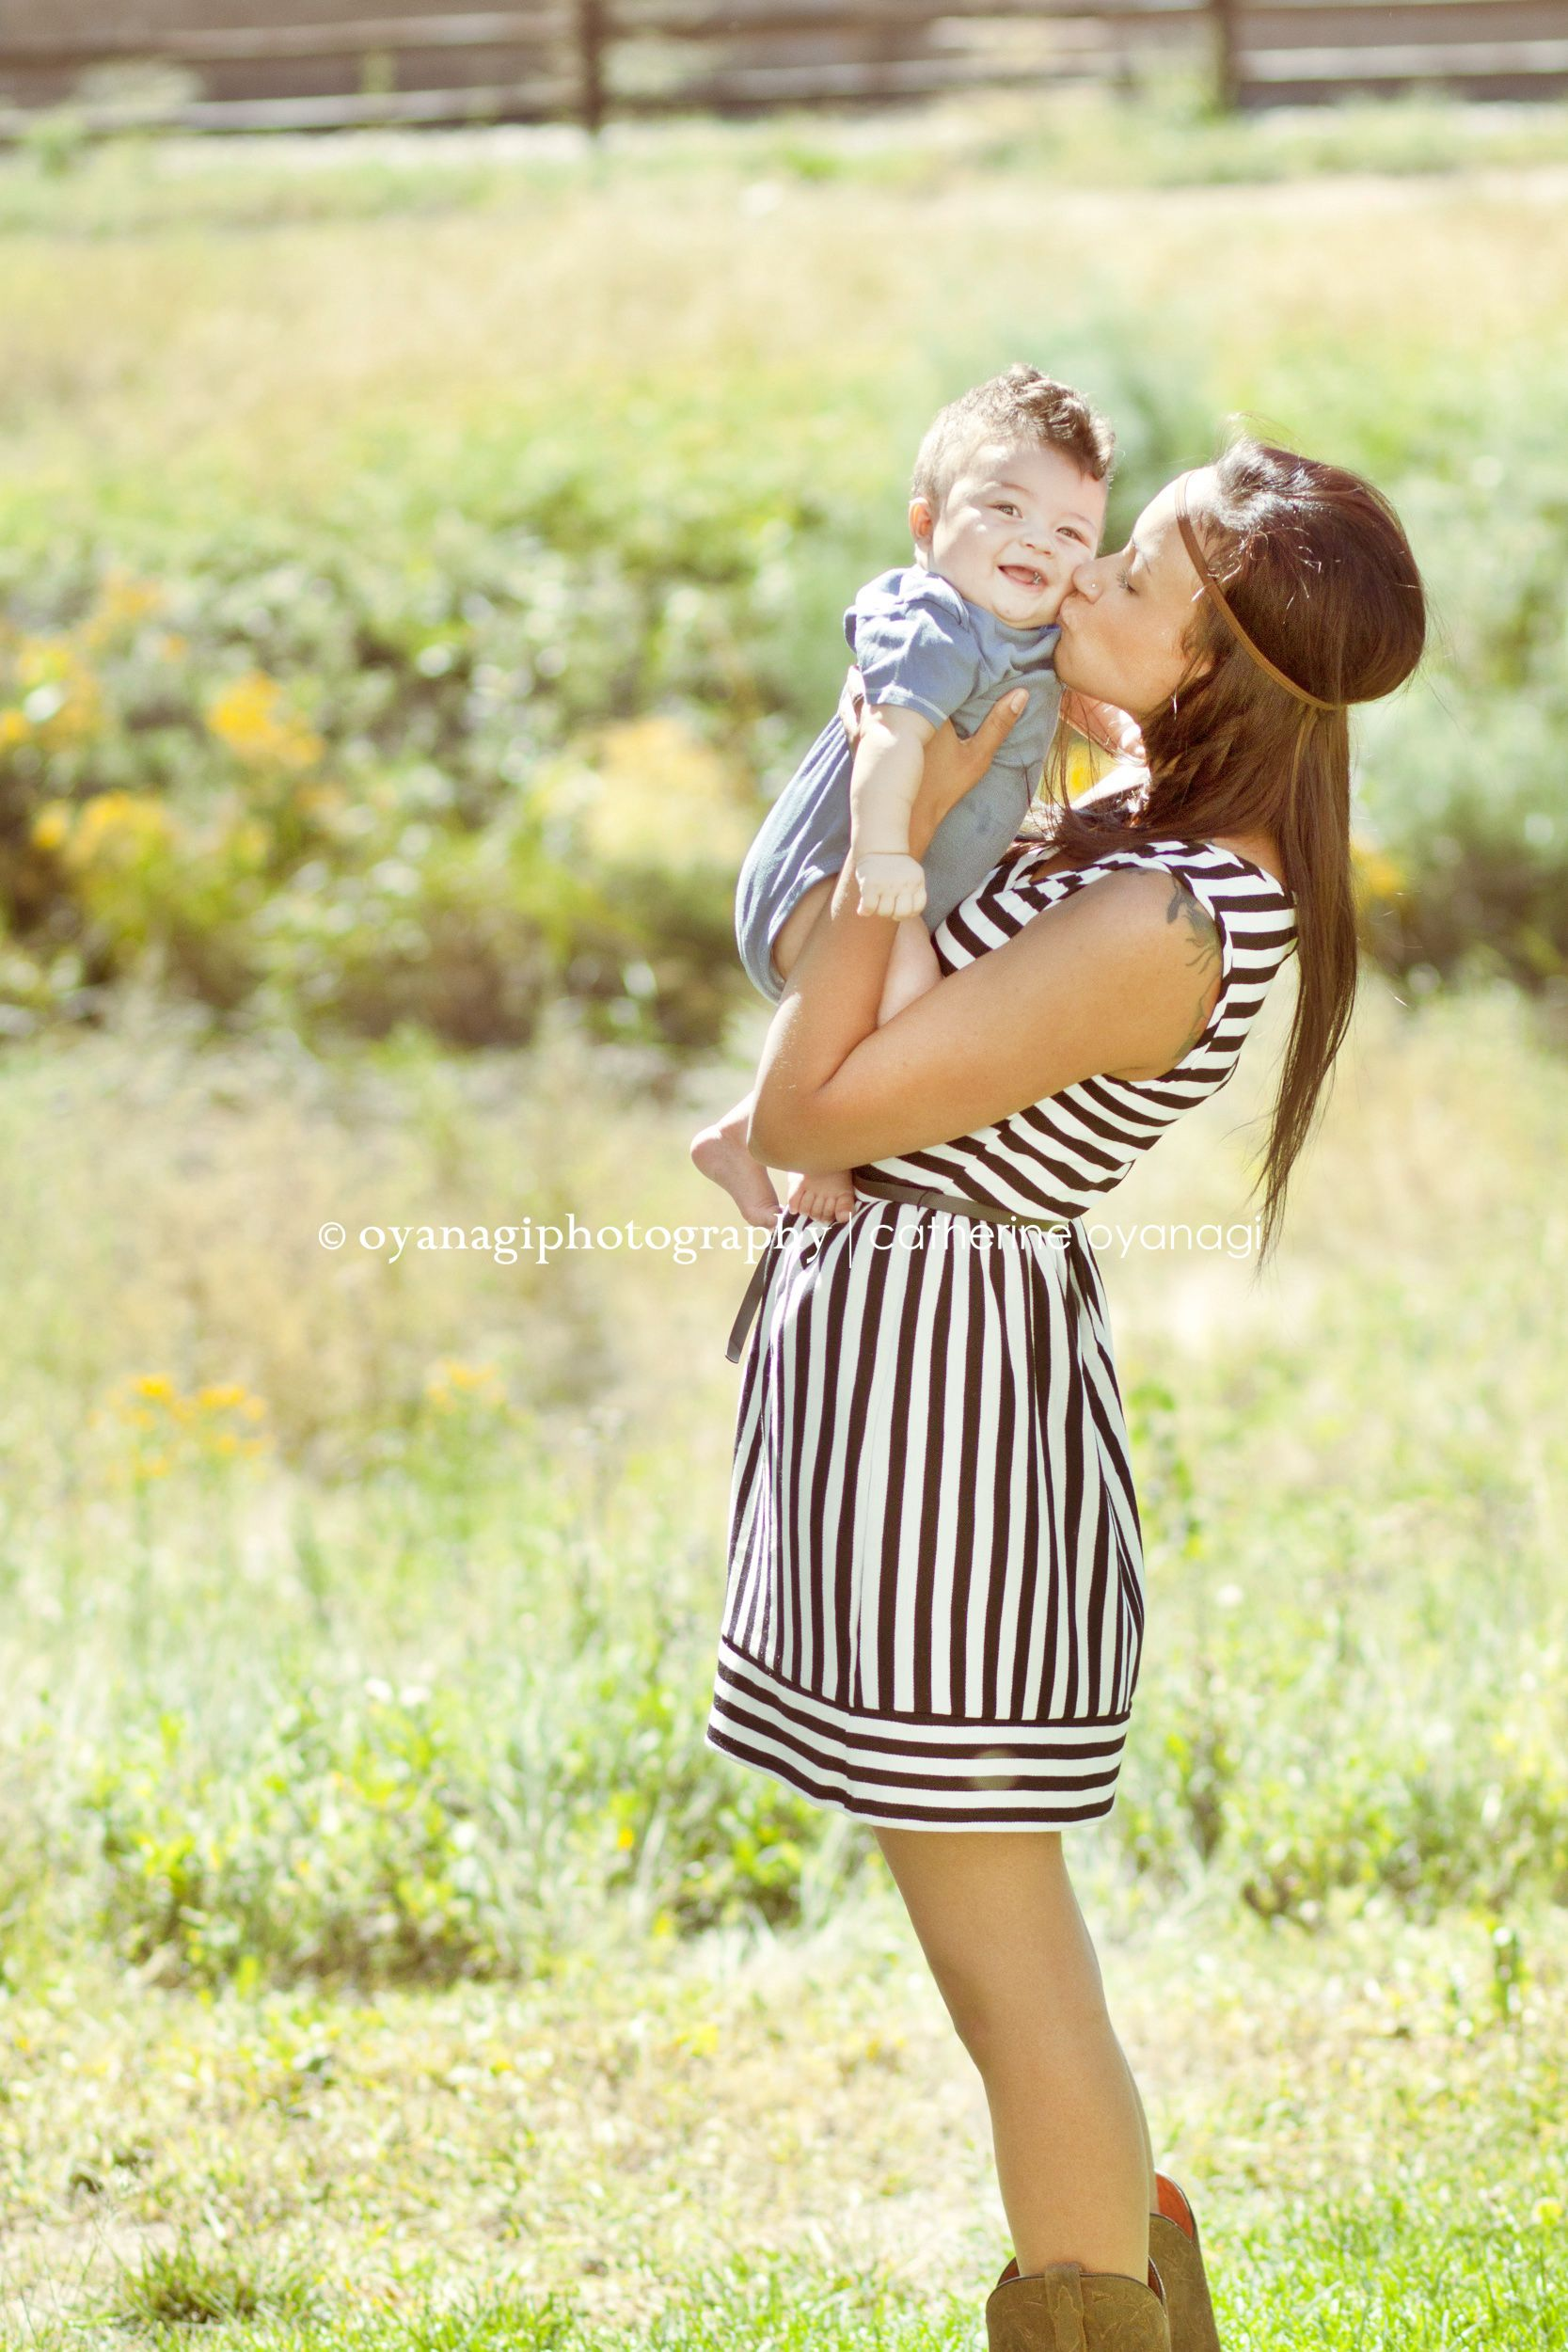 Mother And Son Photo Ideas Mother Son Catherineoyanagiphotography